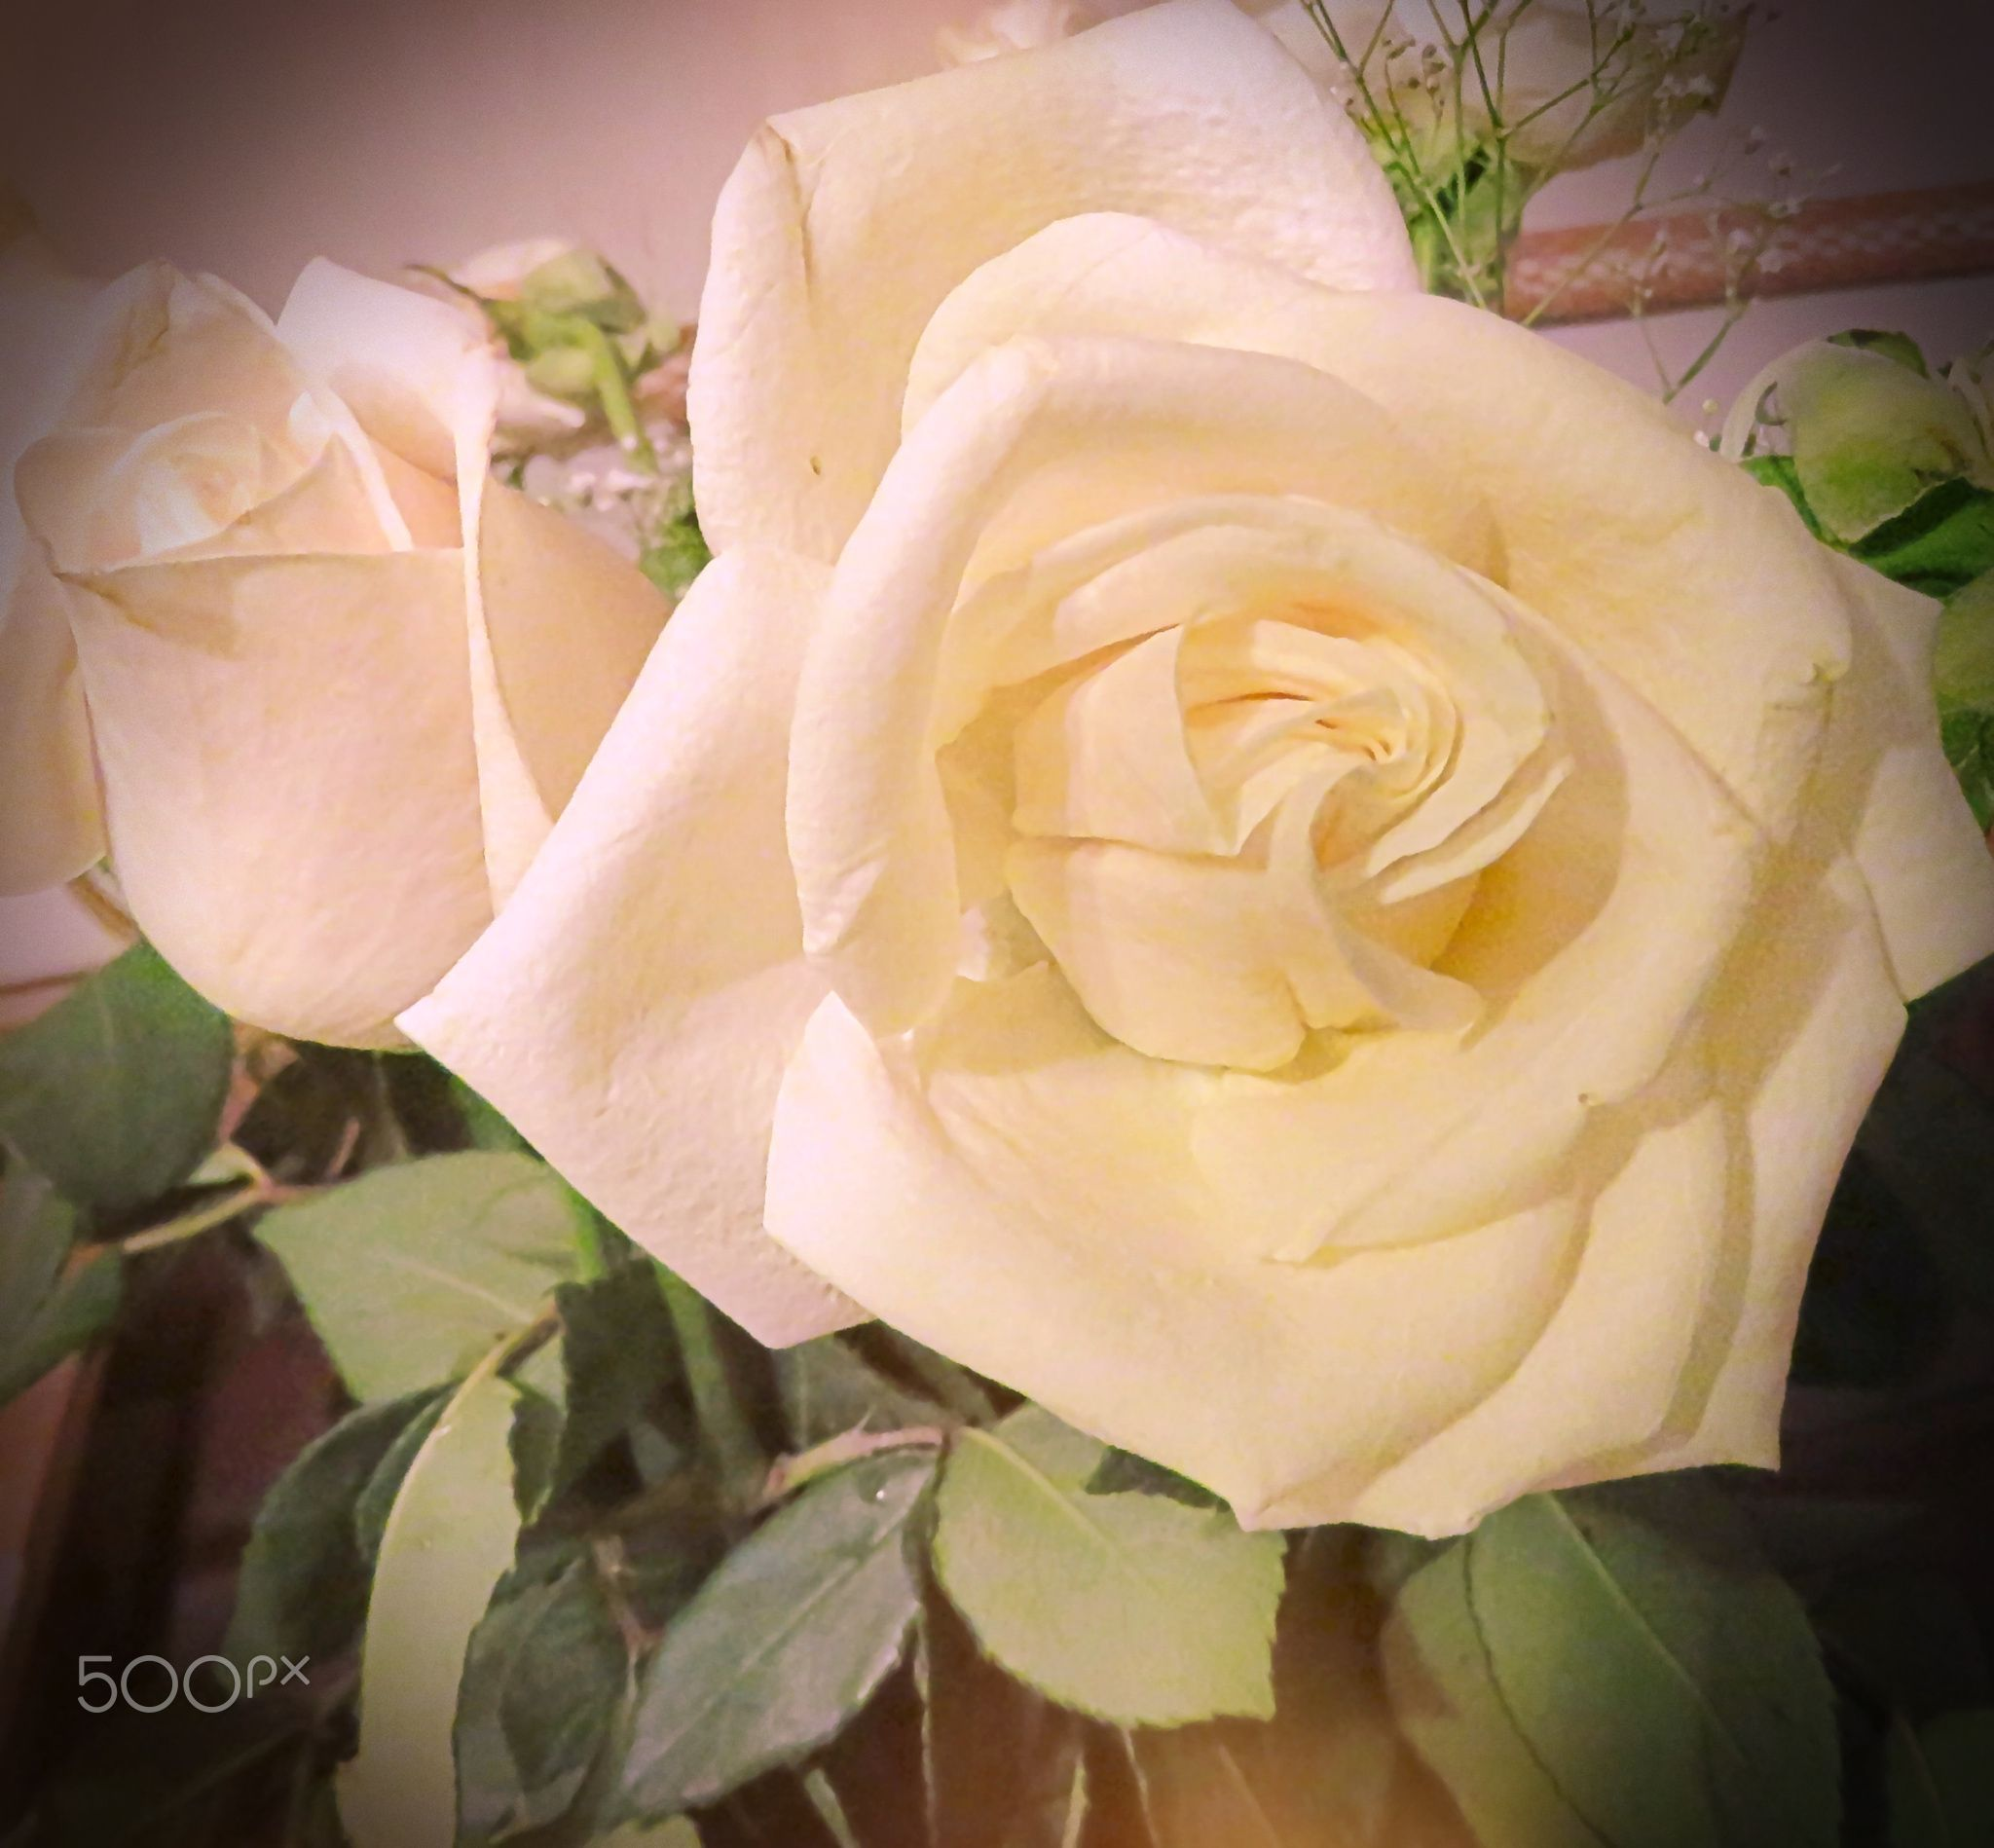 The White Rose Meaning Of White Rose Suited To Reverent Occasions